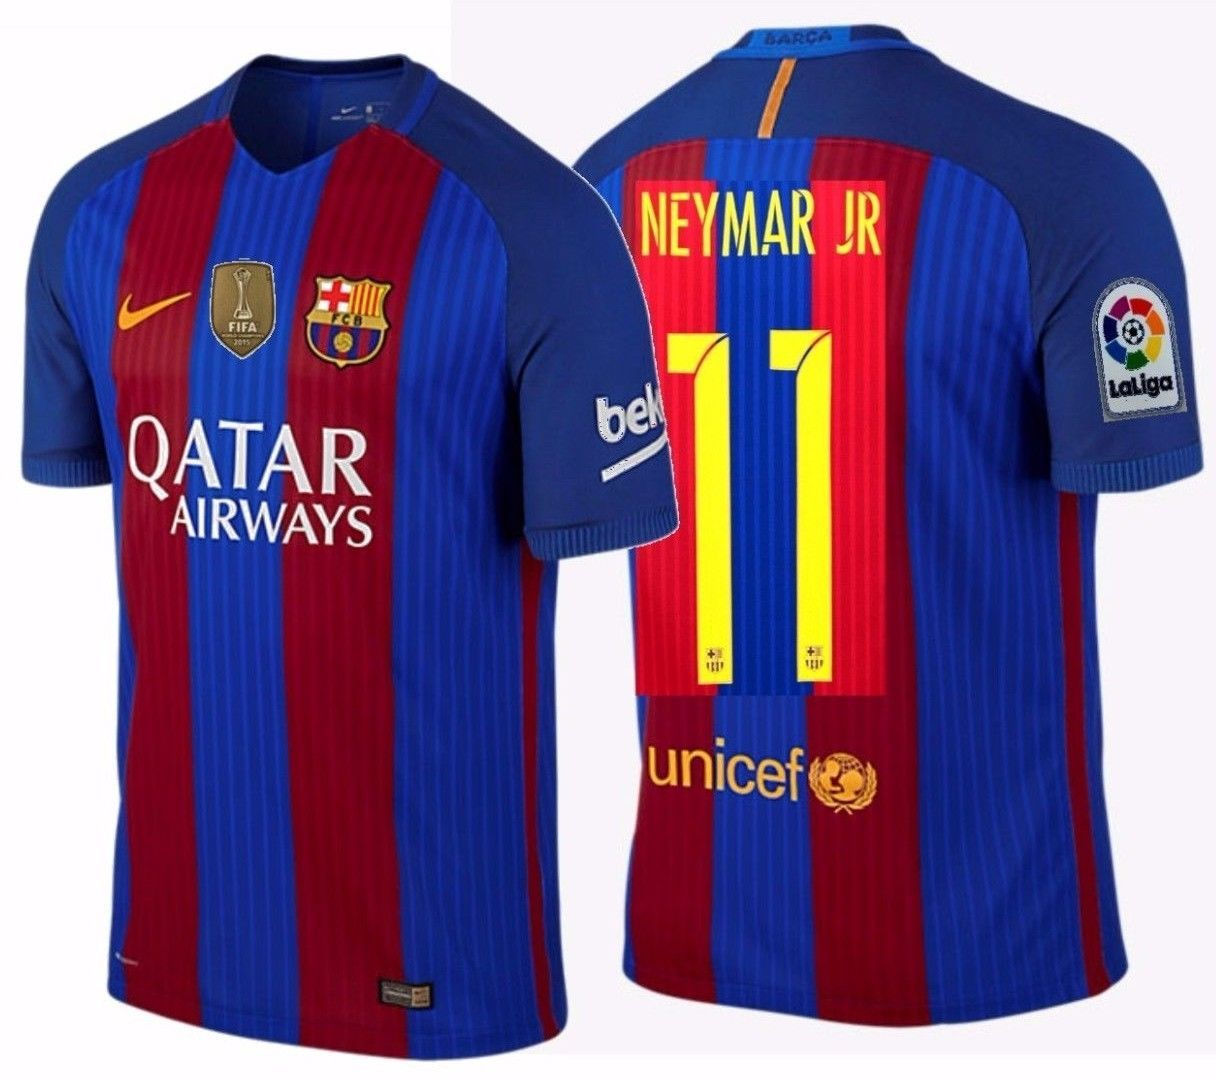 NIKE NEYMAR JR. FC BARCELONA AUTHENTIC VAPOR MATCH HOME JERSEY 2016/17 QATAR.